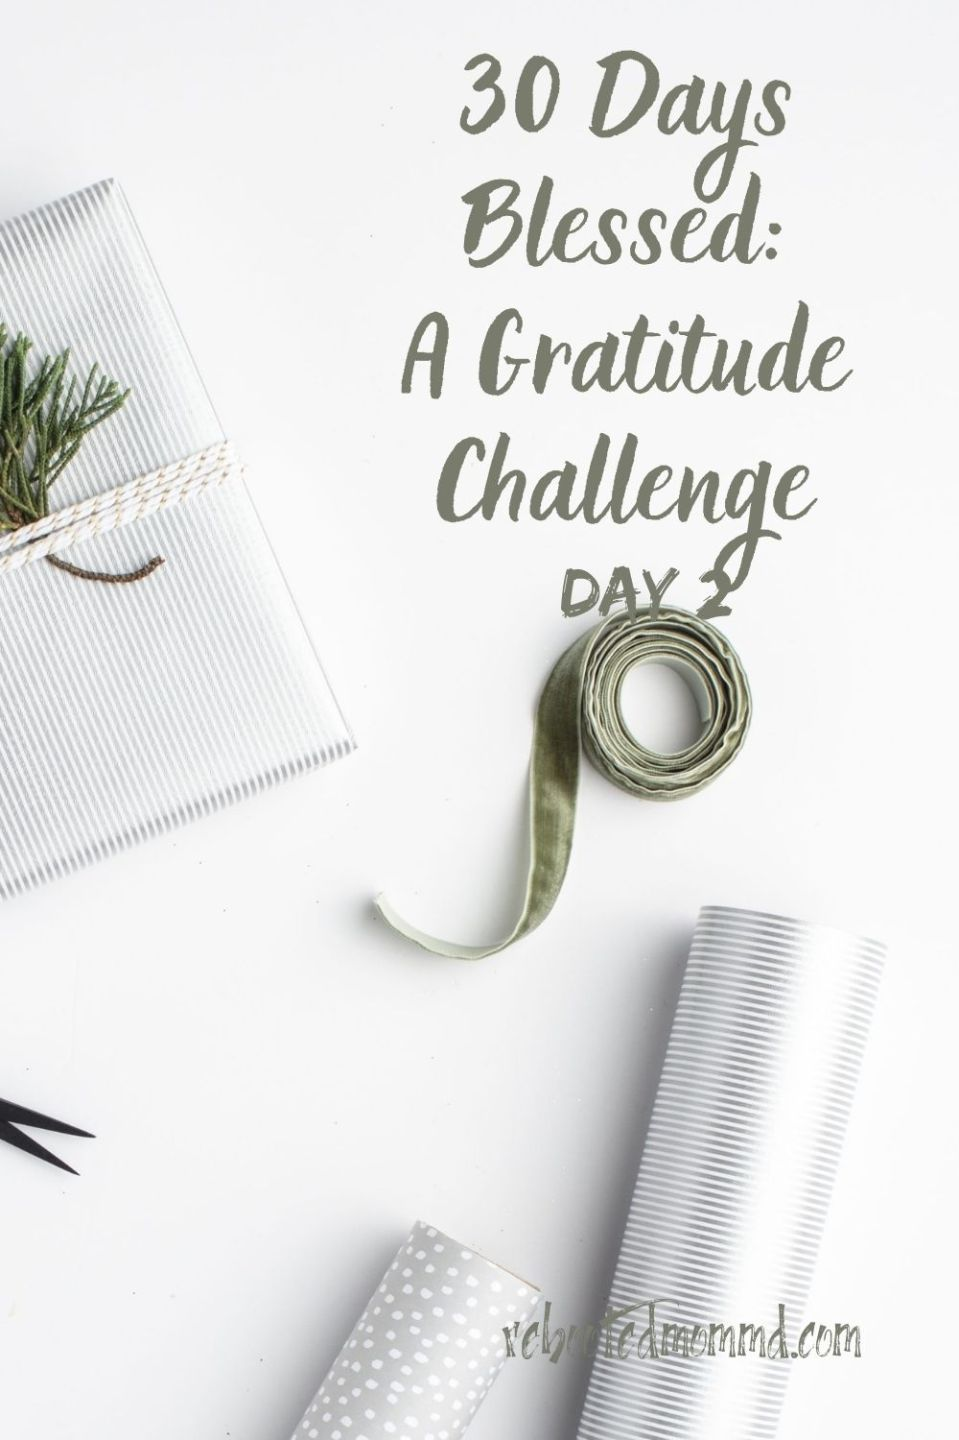 Day 2: Accentuate the Positive